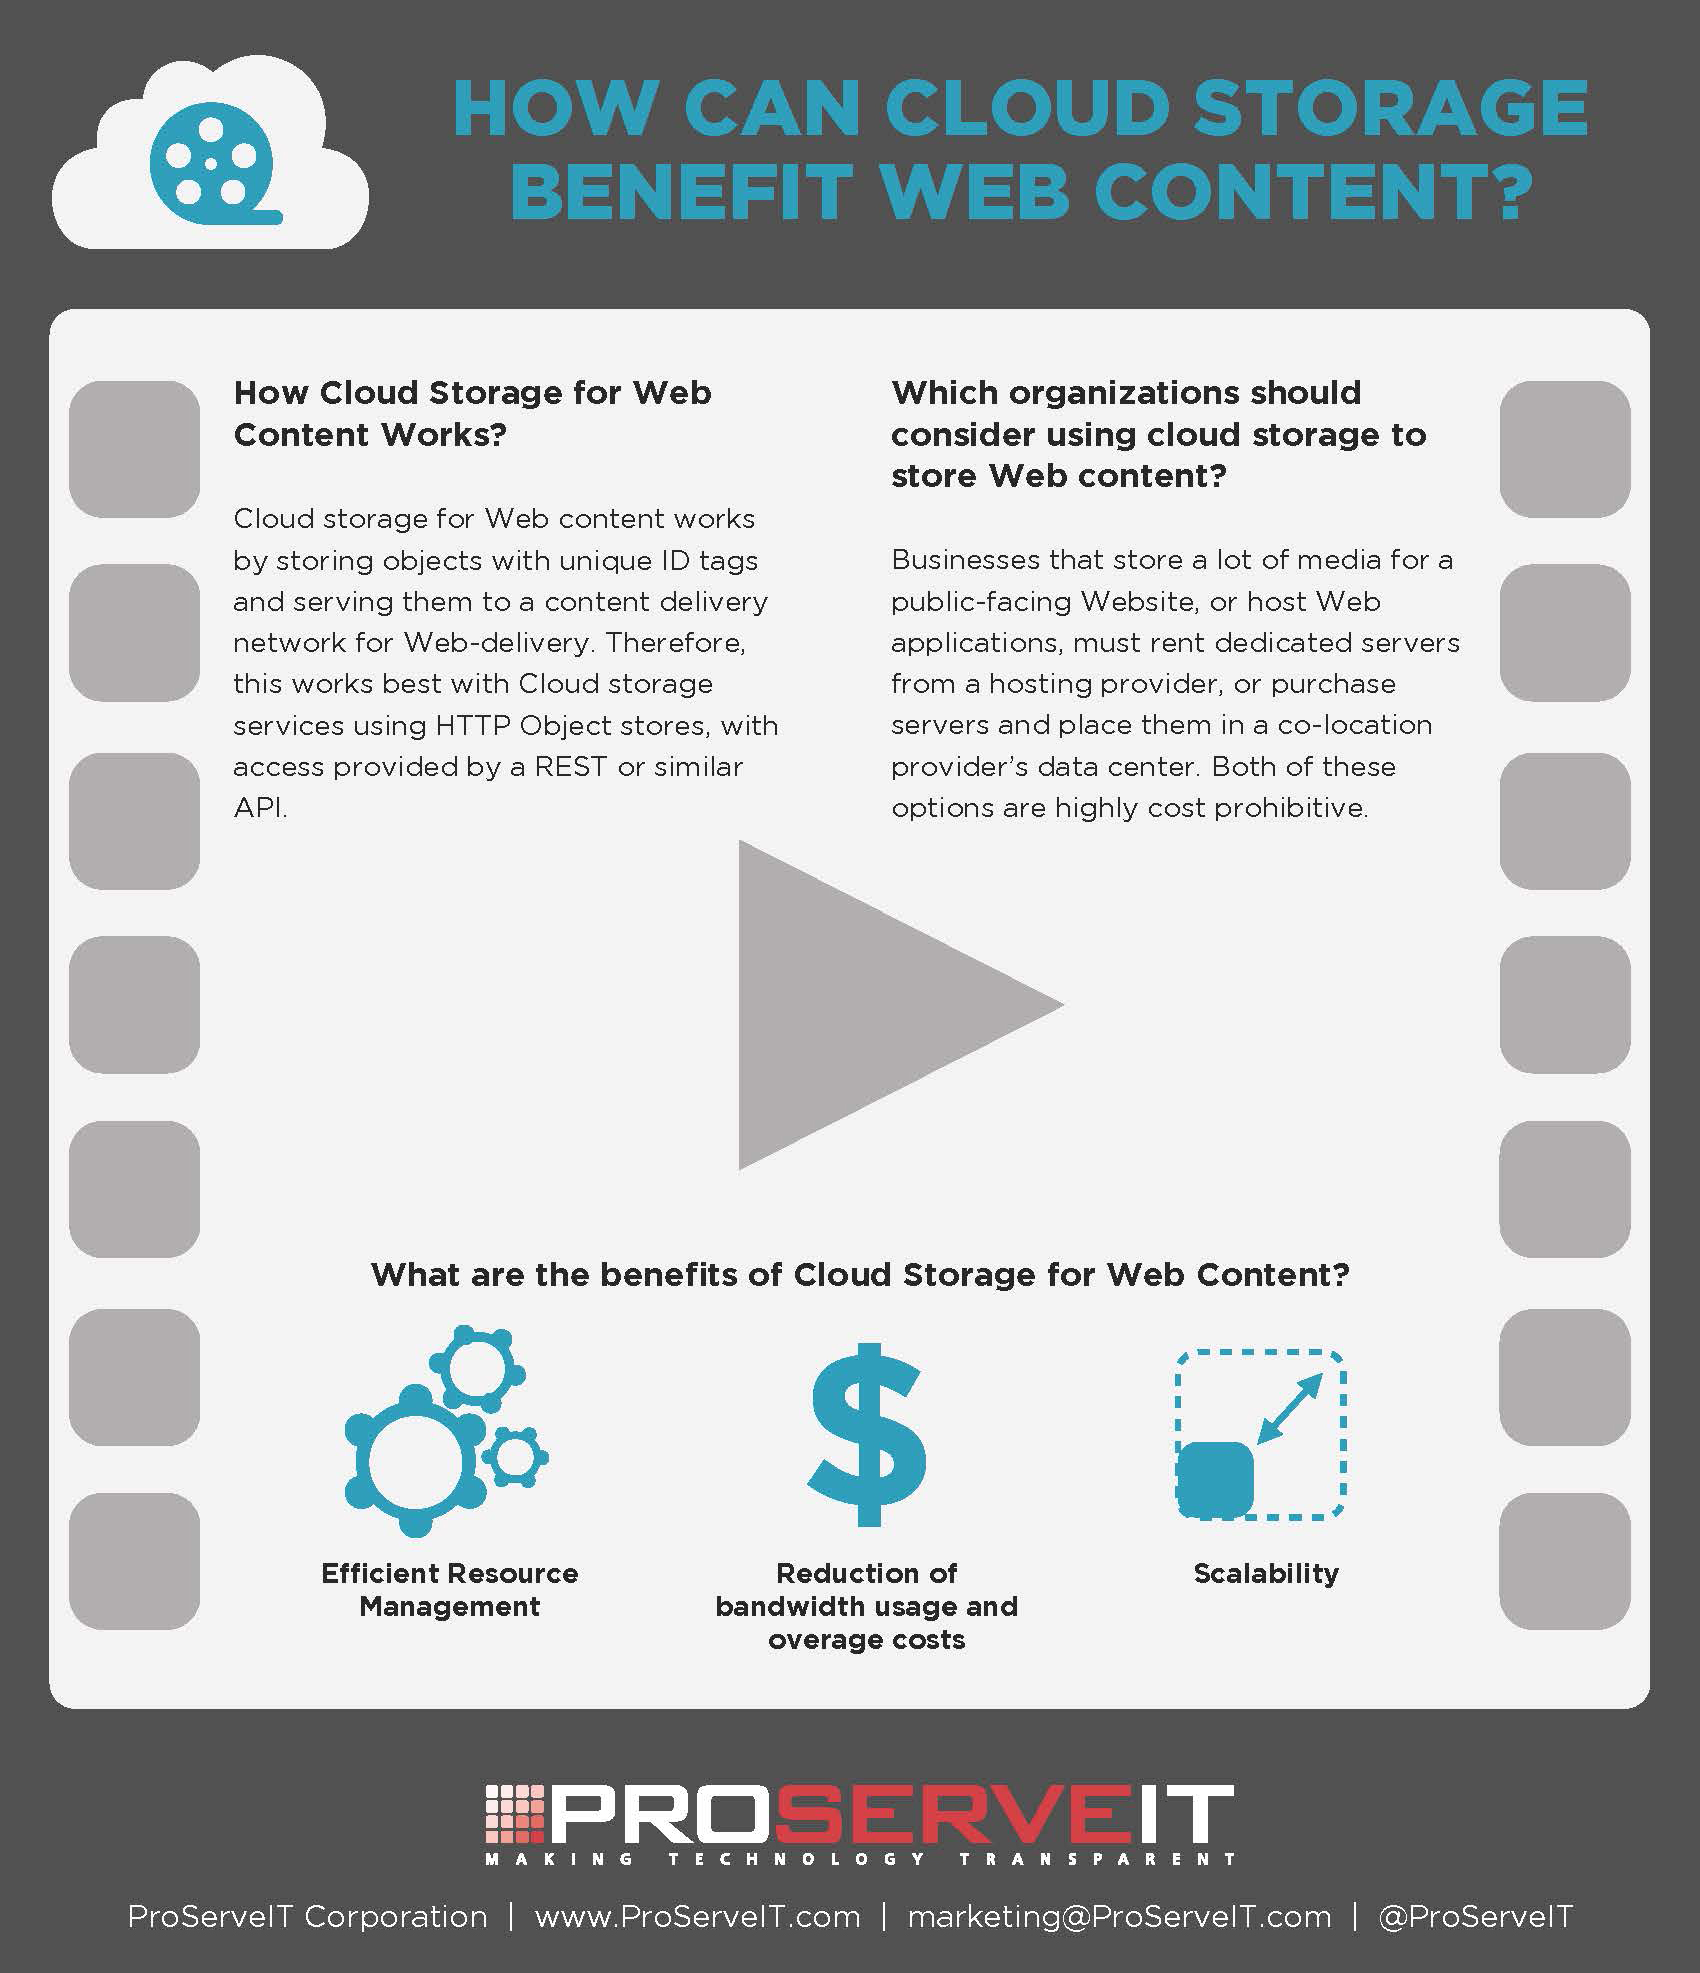 how cloud storage can benefit web content (1)